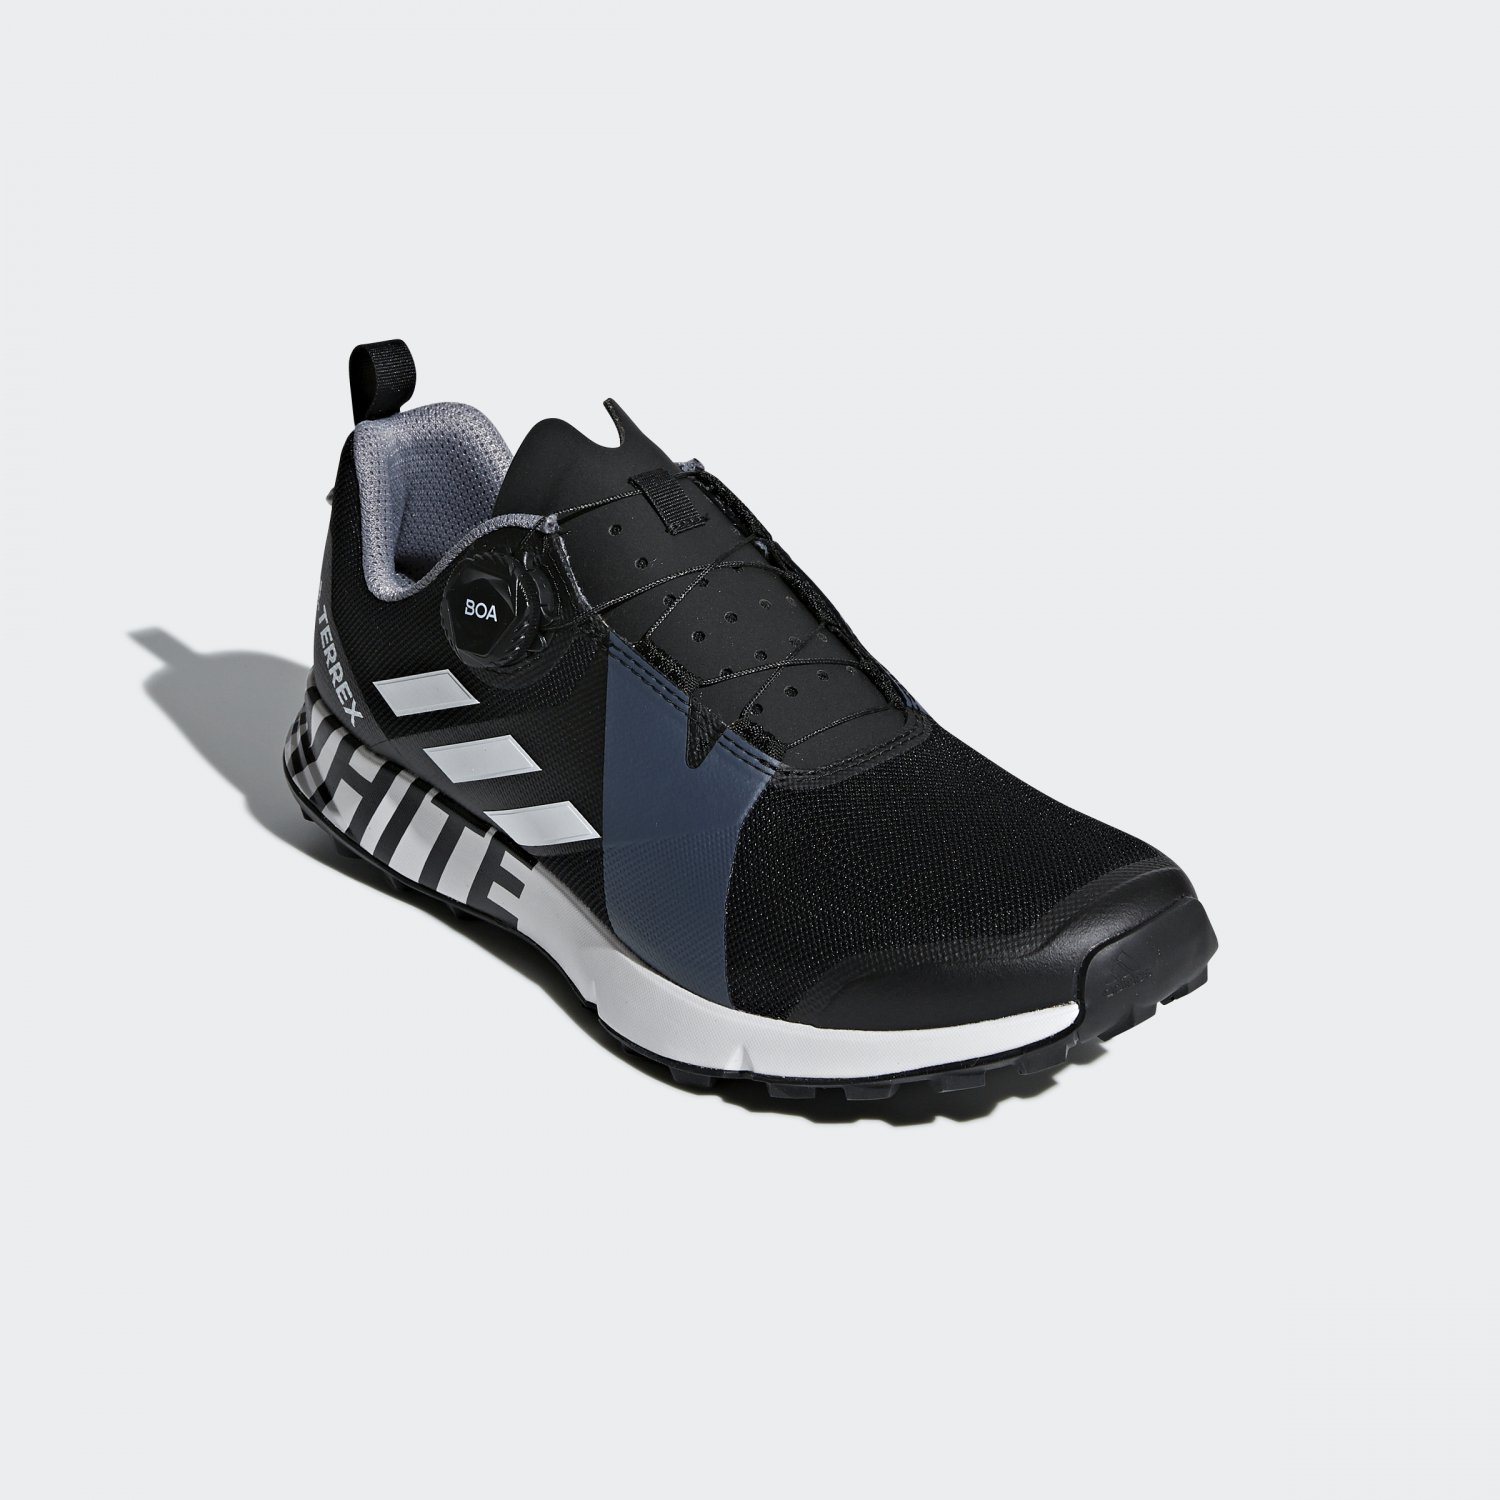 adidas-white-mountaineering-terrex-two-boa-bb7743-release-20180518